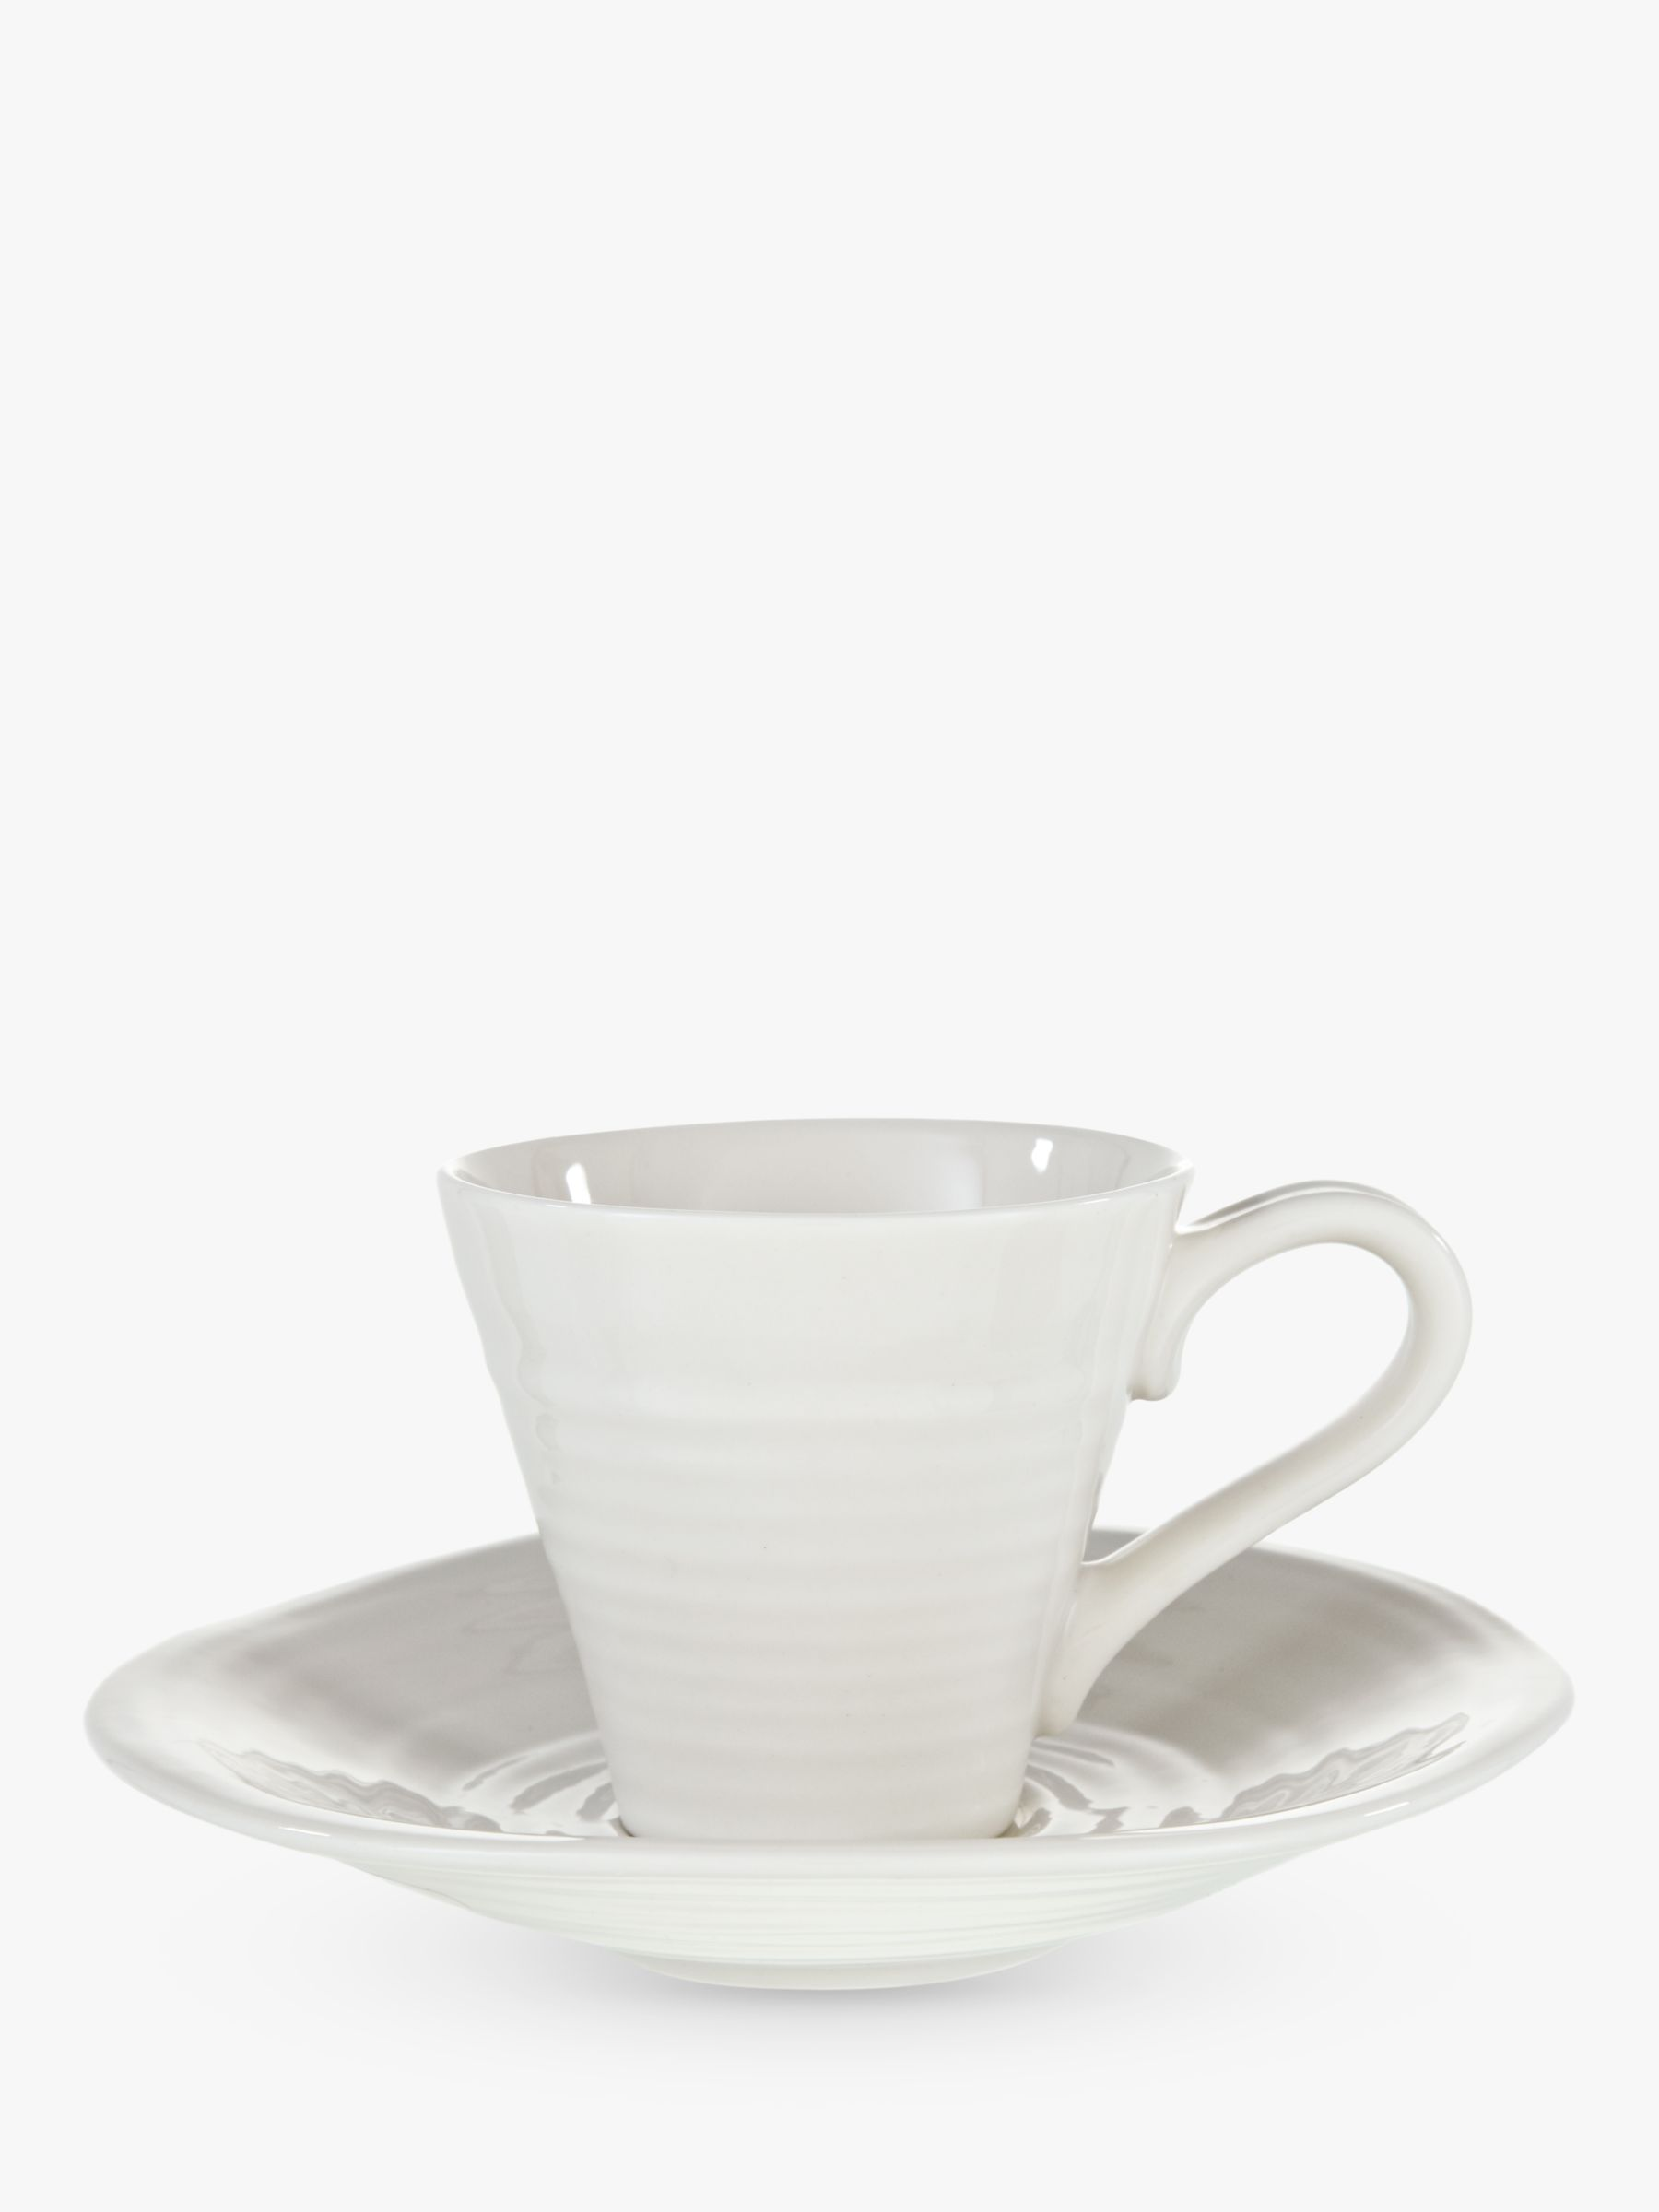 Sophie Conran for Portmeirion Sophie Conran for Portmeirion Espresso Cup and Saucer, White, Pack of 2